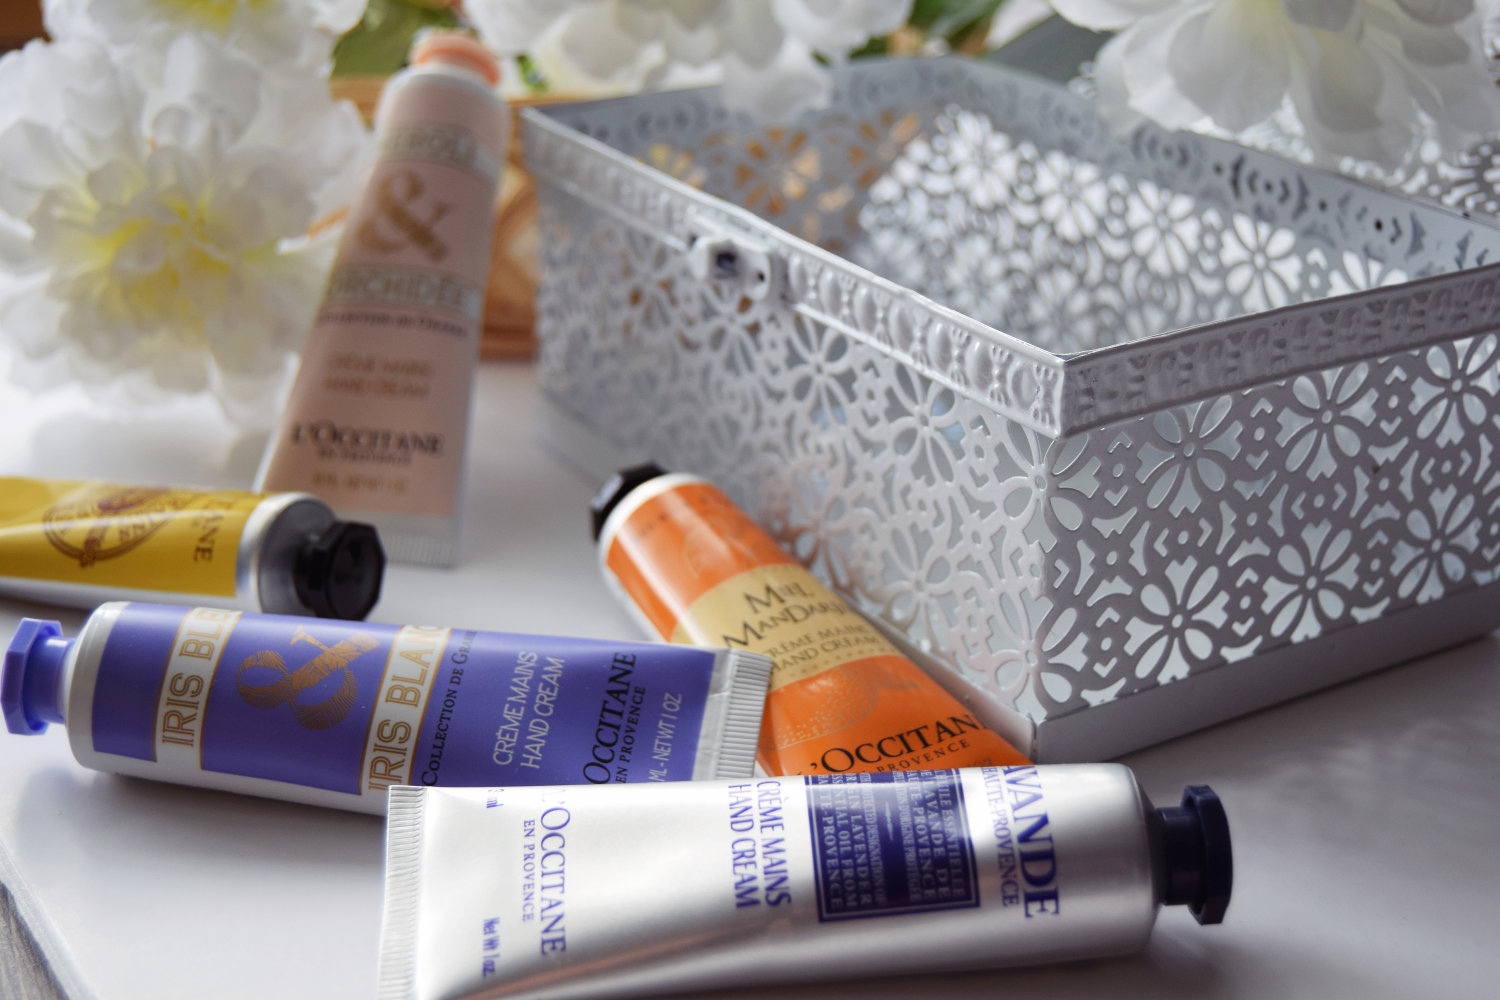 Loccitane_hand_creams_Zalabell_review_7